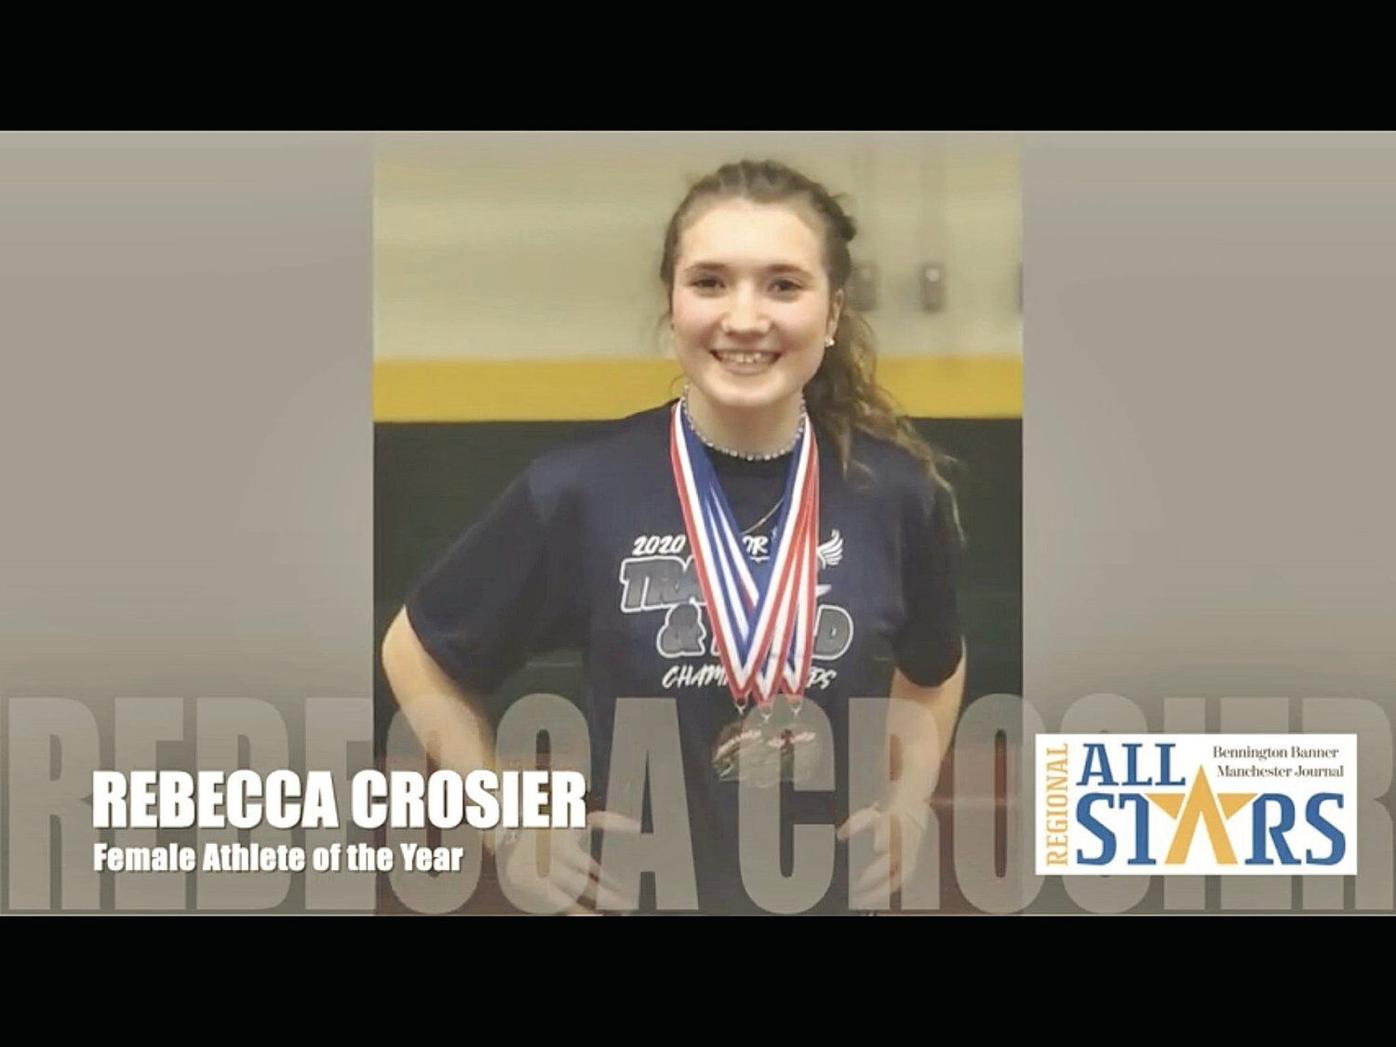 All Stars virtual ceremony honors region's top athletes